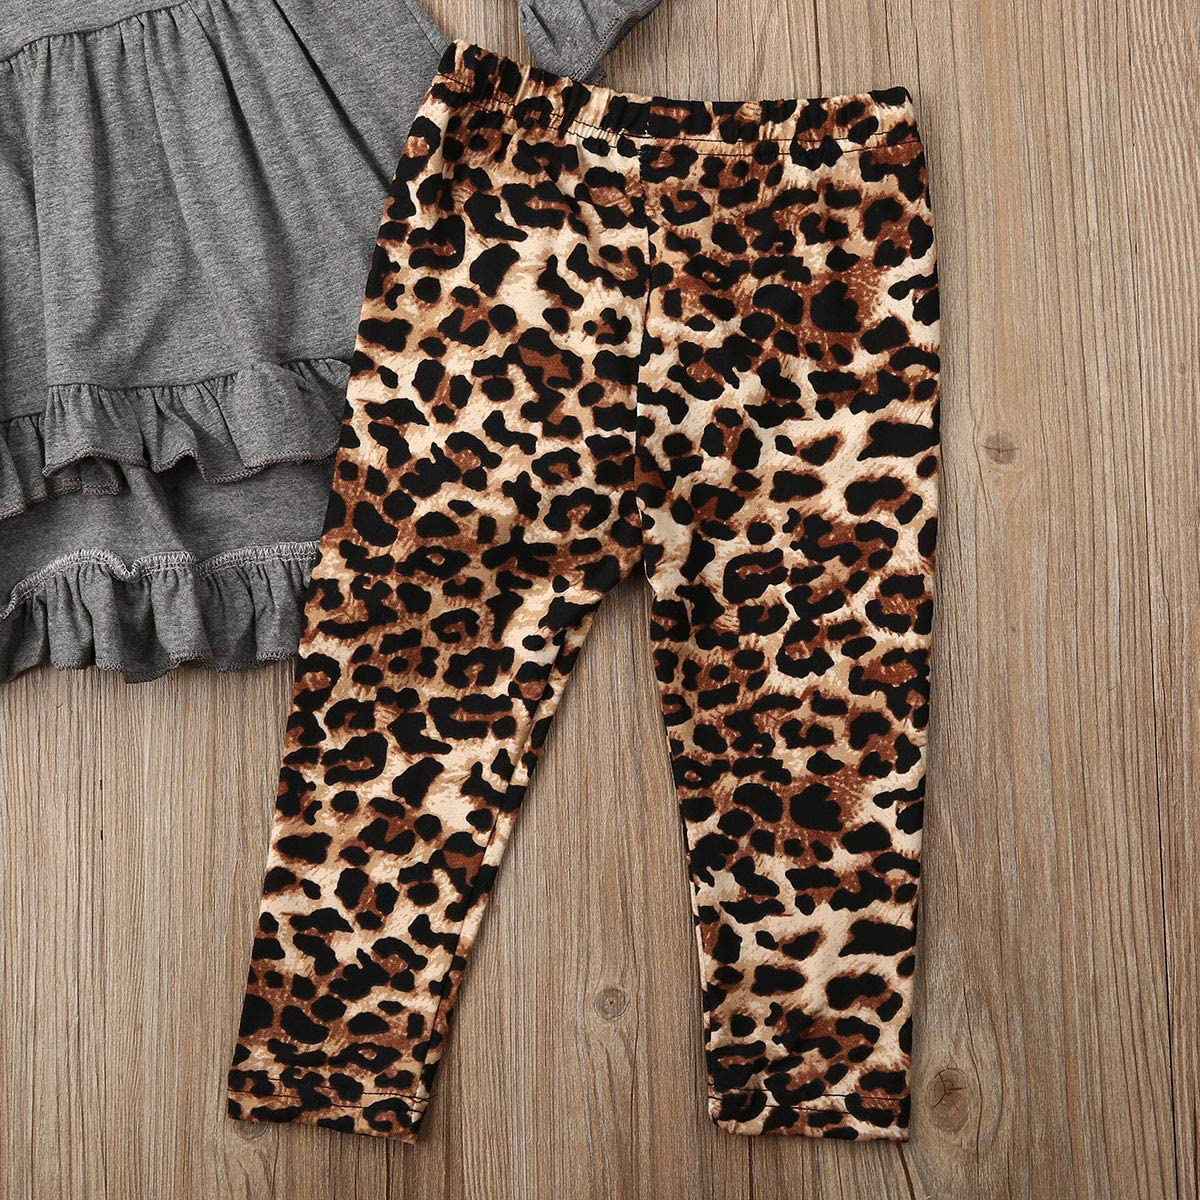 3PCS Toddler Baby Girl Fall Outfit Ruffle Long Sleeve Tunic Top+Leopard Legging Pants+Headband Clothes Set